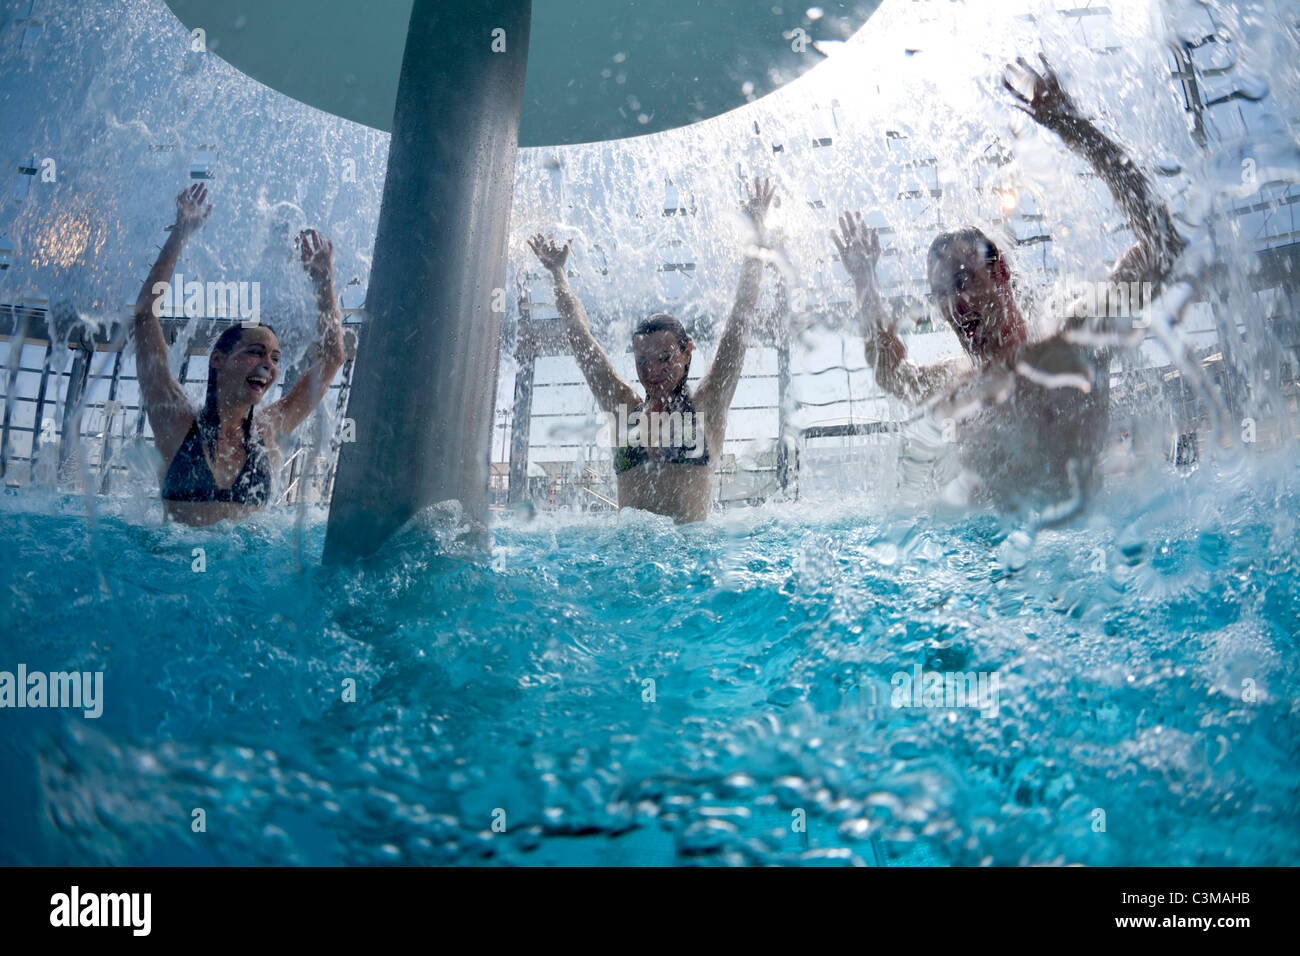 A balneotherapy session in the Vichy - Val d'Allier swimming pool (Bellerive-sur-Allier - Allier - Auvergne - Stock Image